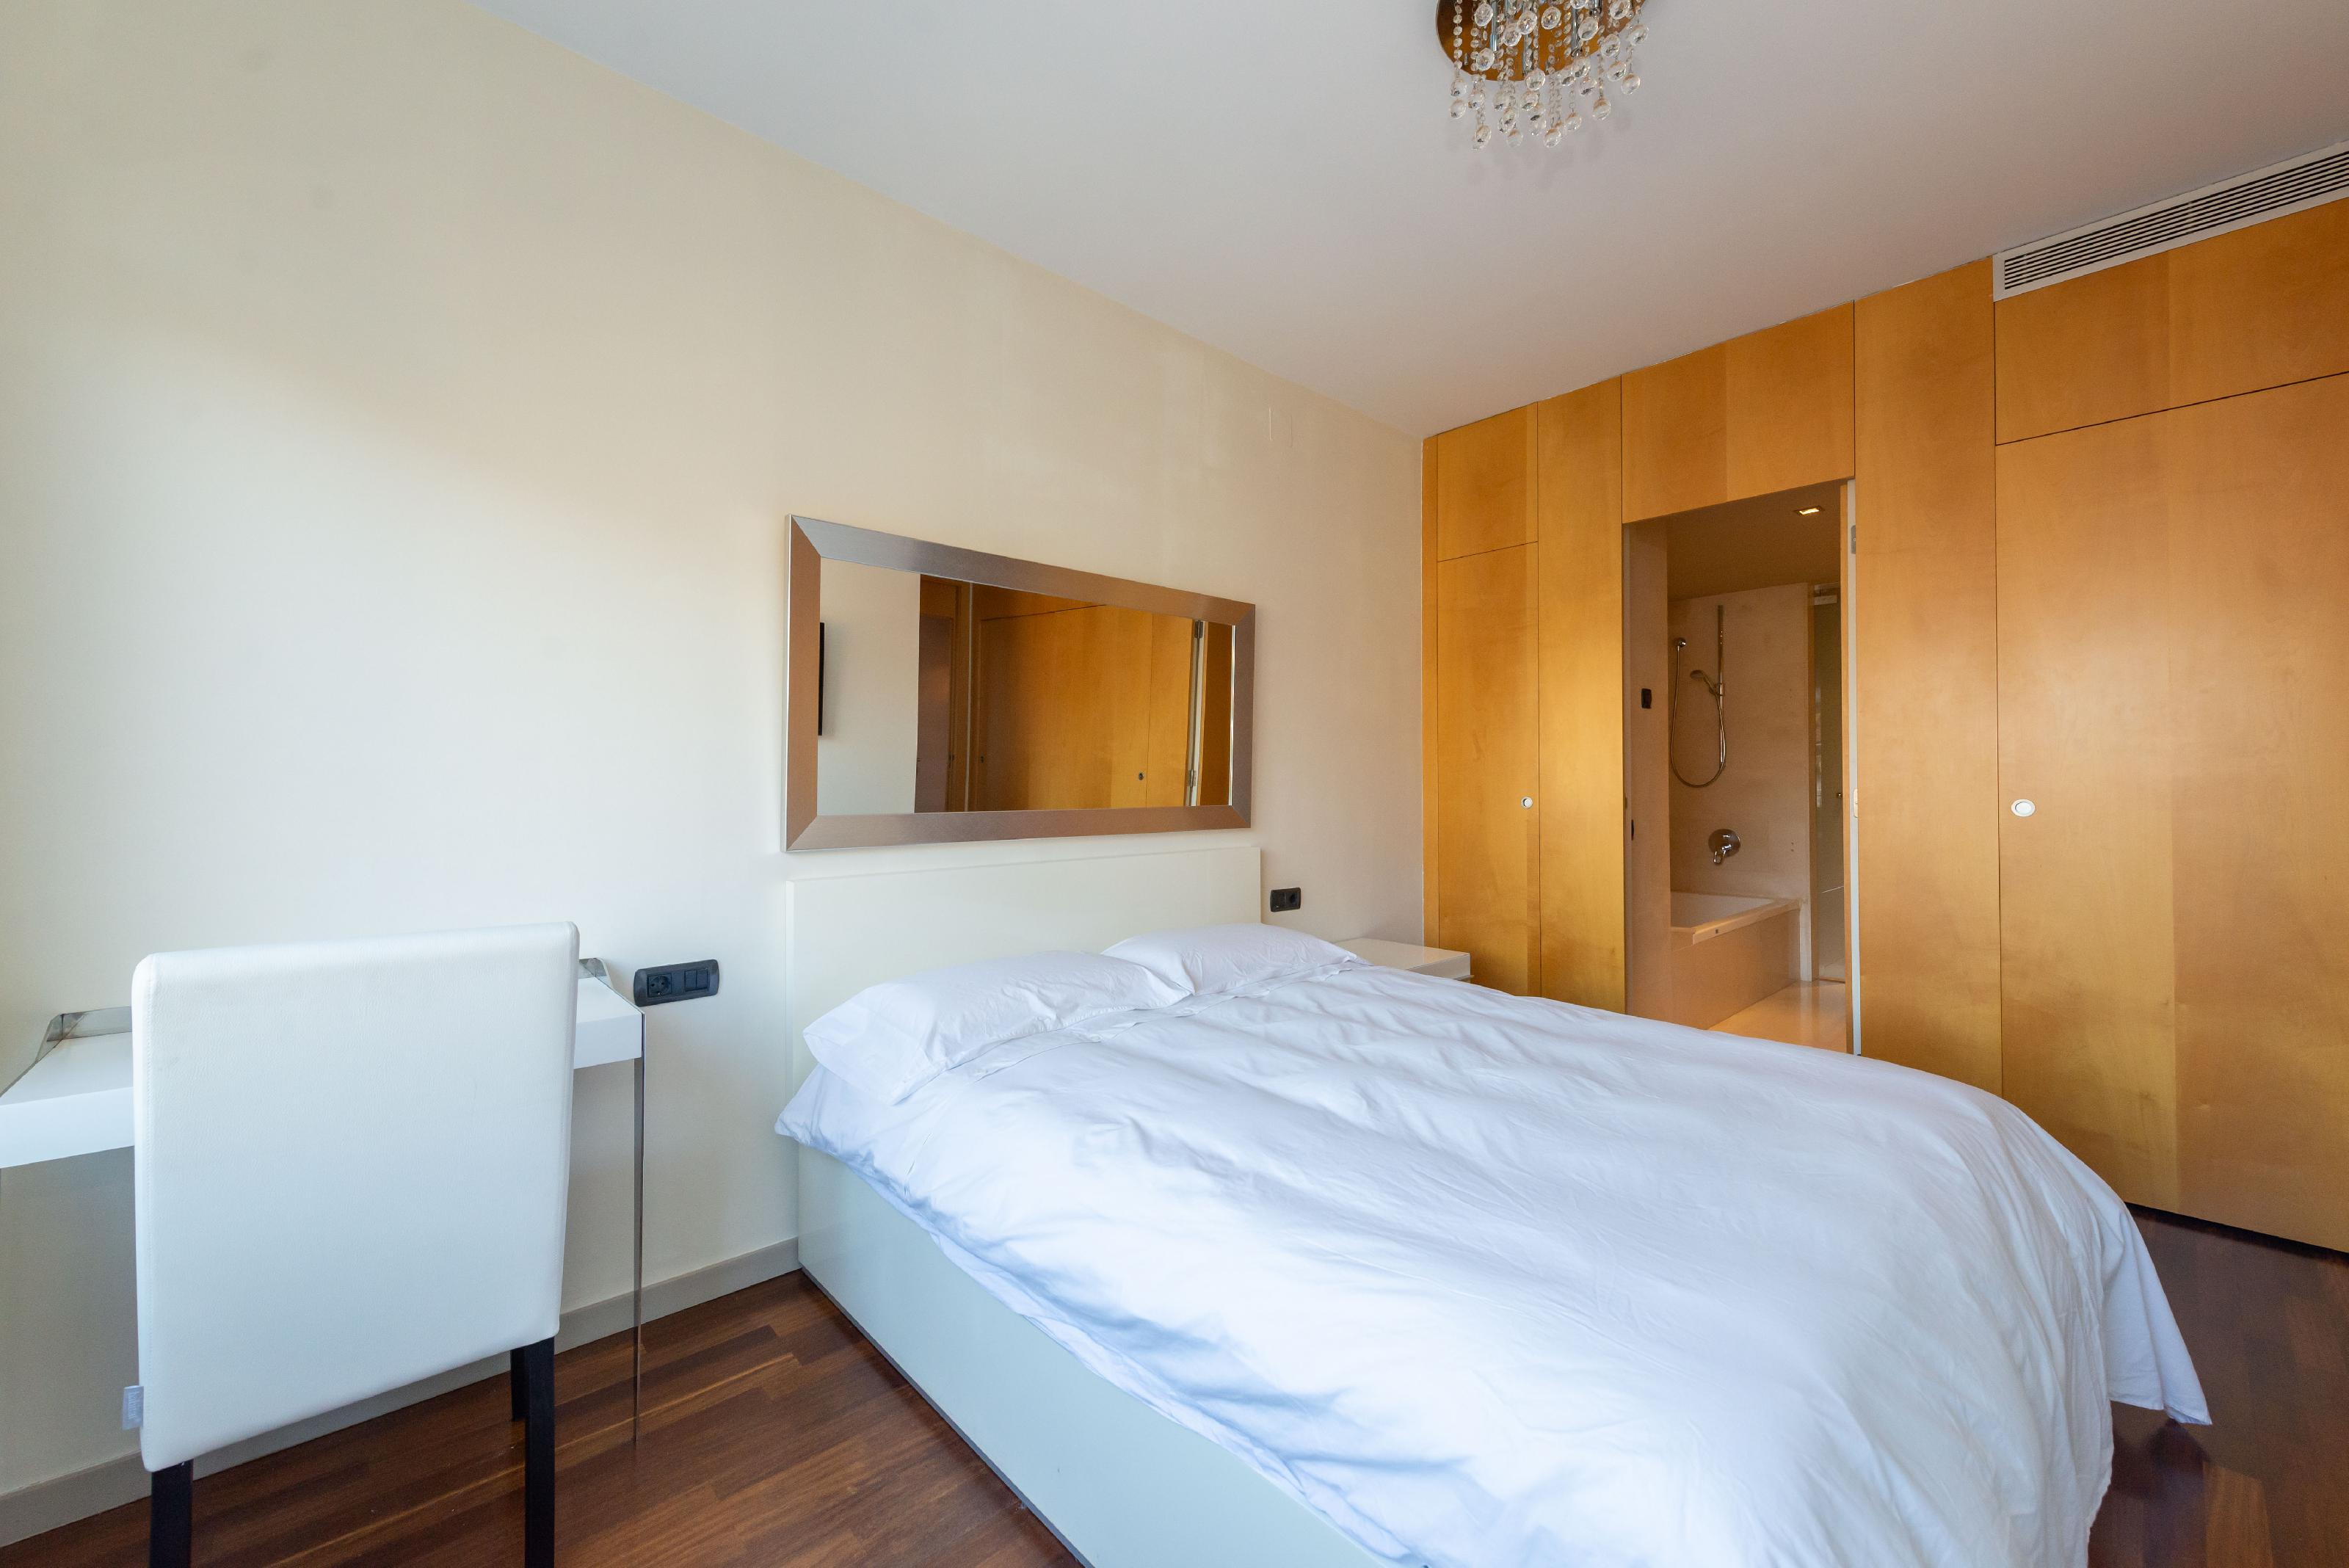 246682 Flat for sale in Gràcia, Vallcarca and Els Penitents 8